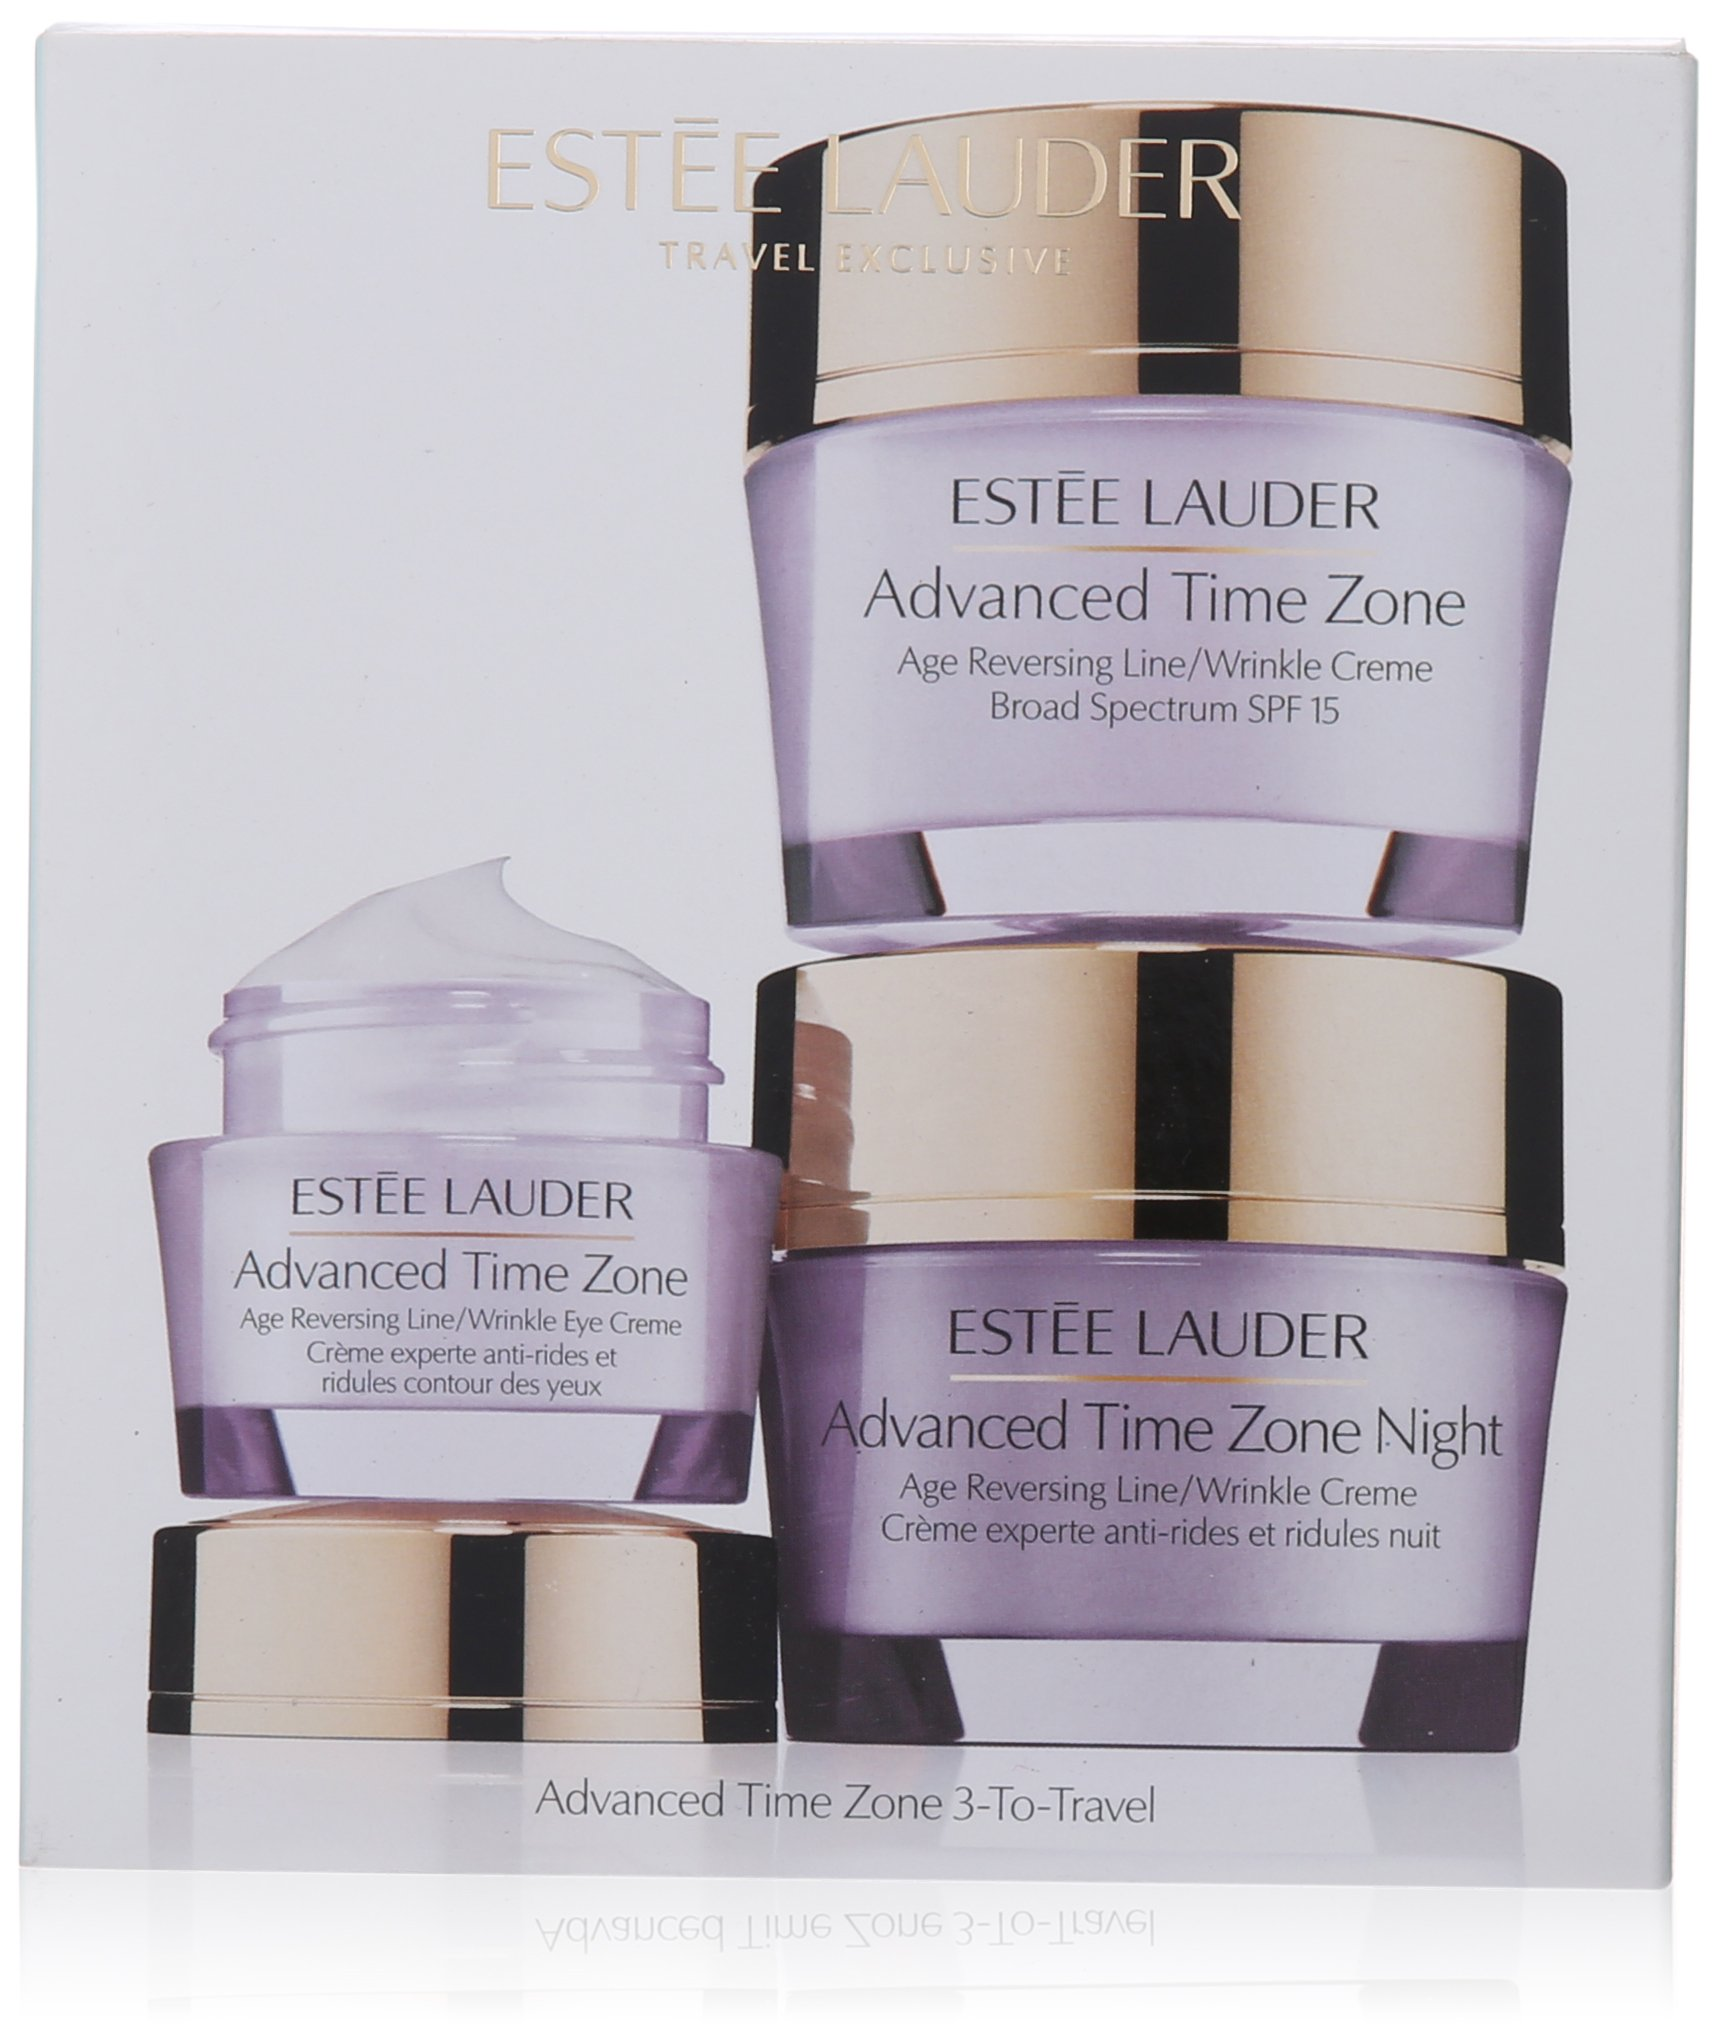 Estee Lauder 3 Piece Advanced Time Zone 3 to Travel Kit for Unisex